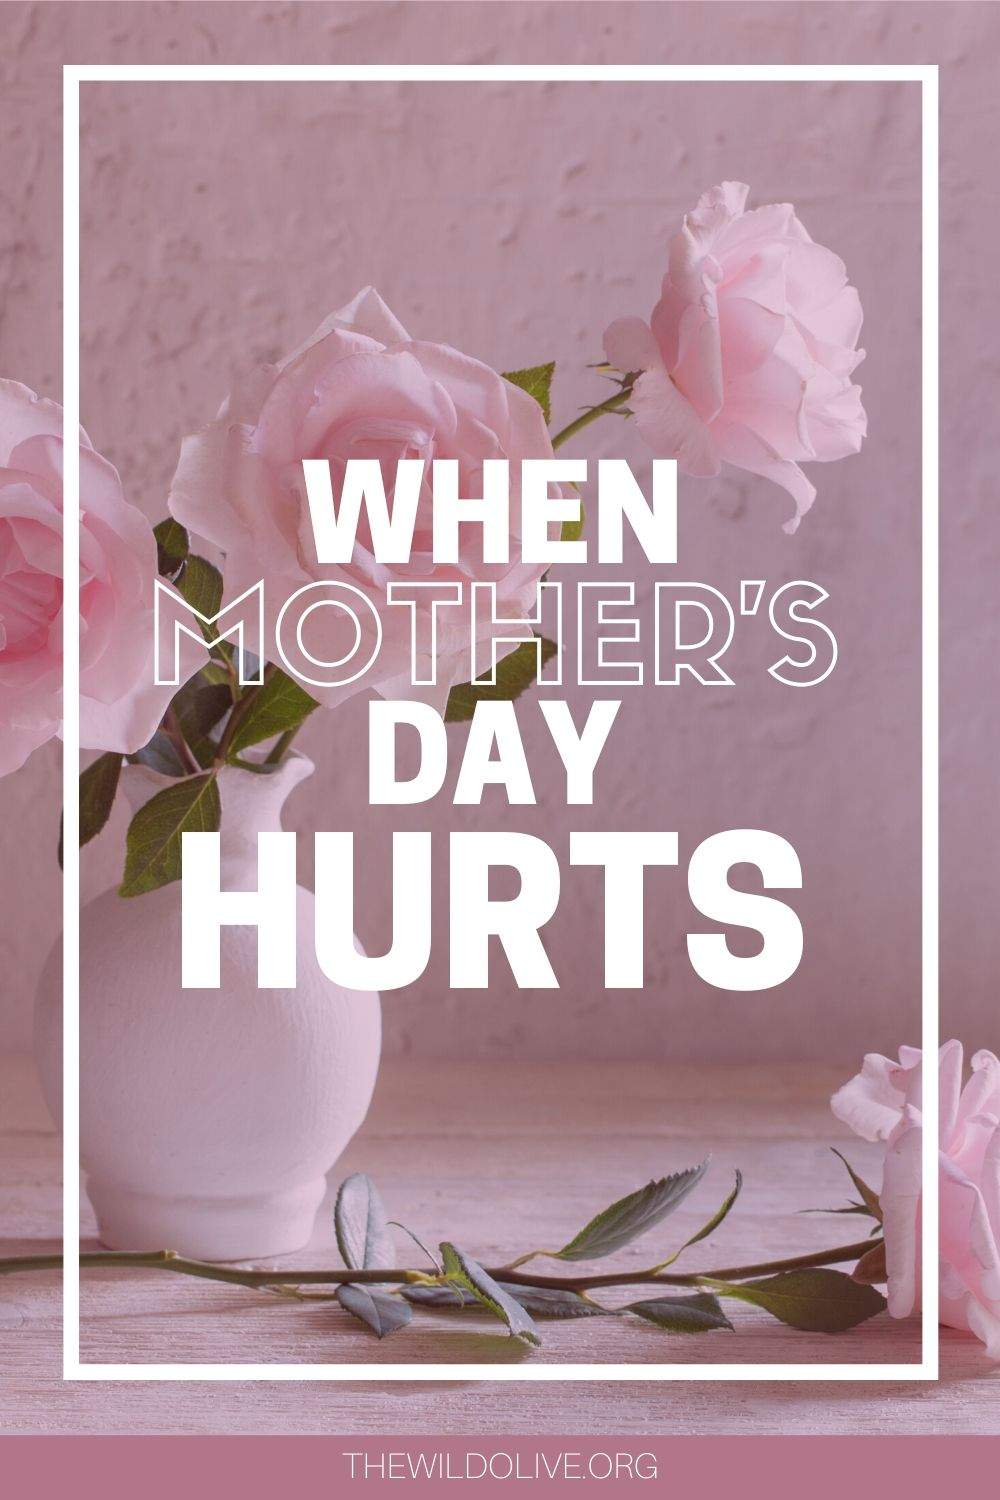 ways to cope when Mother's Day hurts